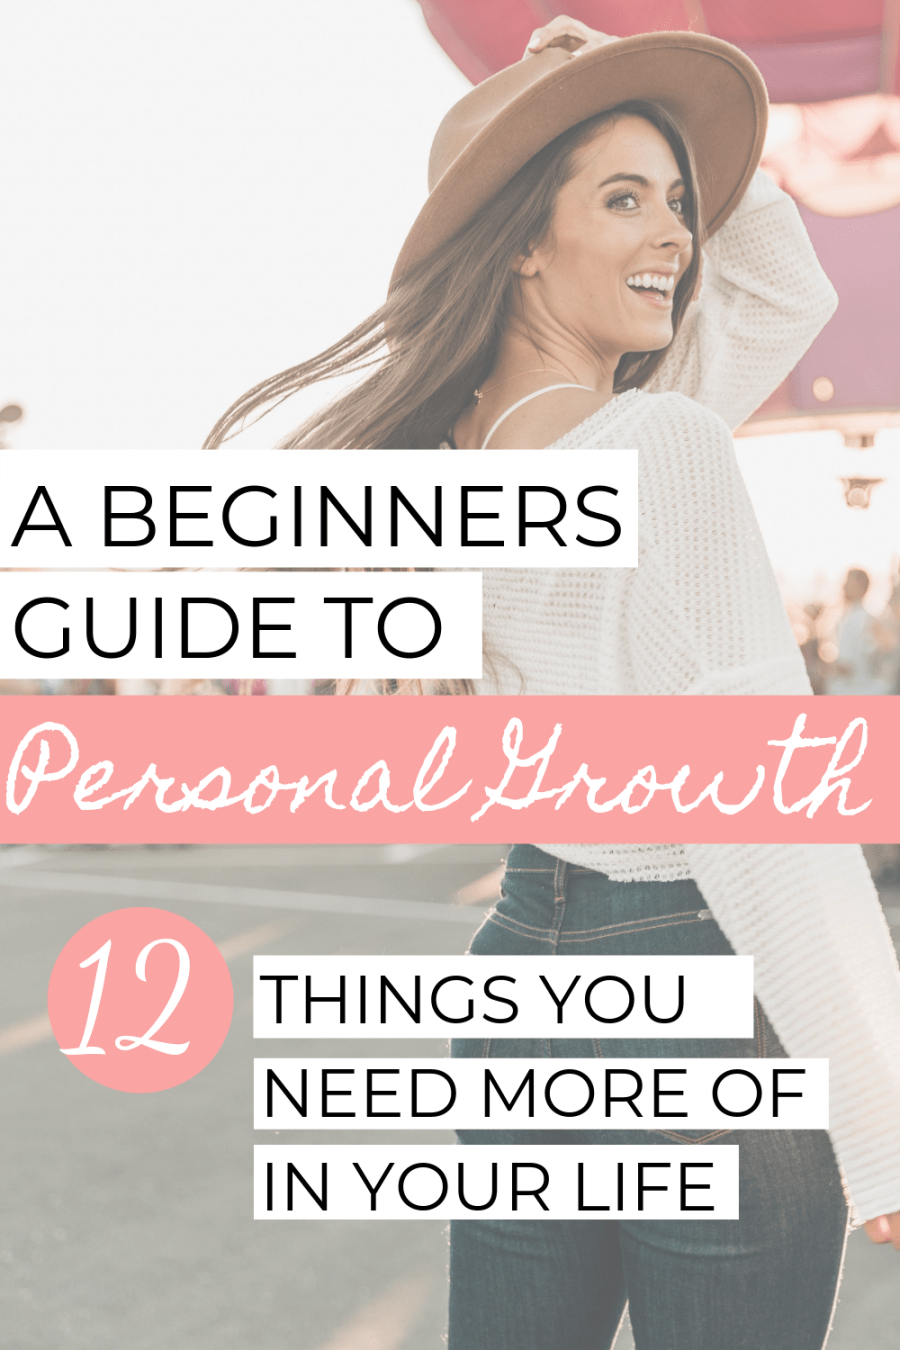 The Beginners Guide to Personal Growth: 12 Things You Need More of in Your Life